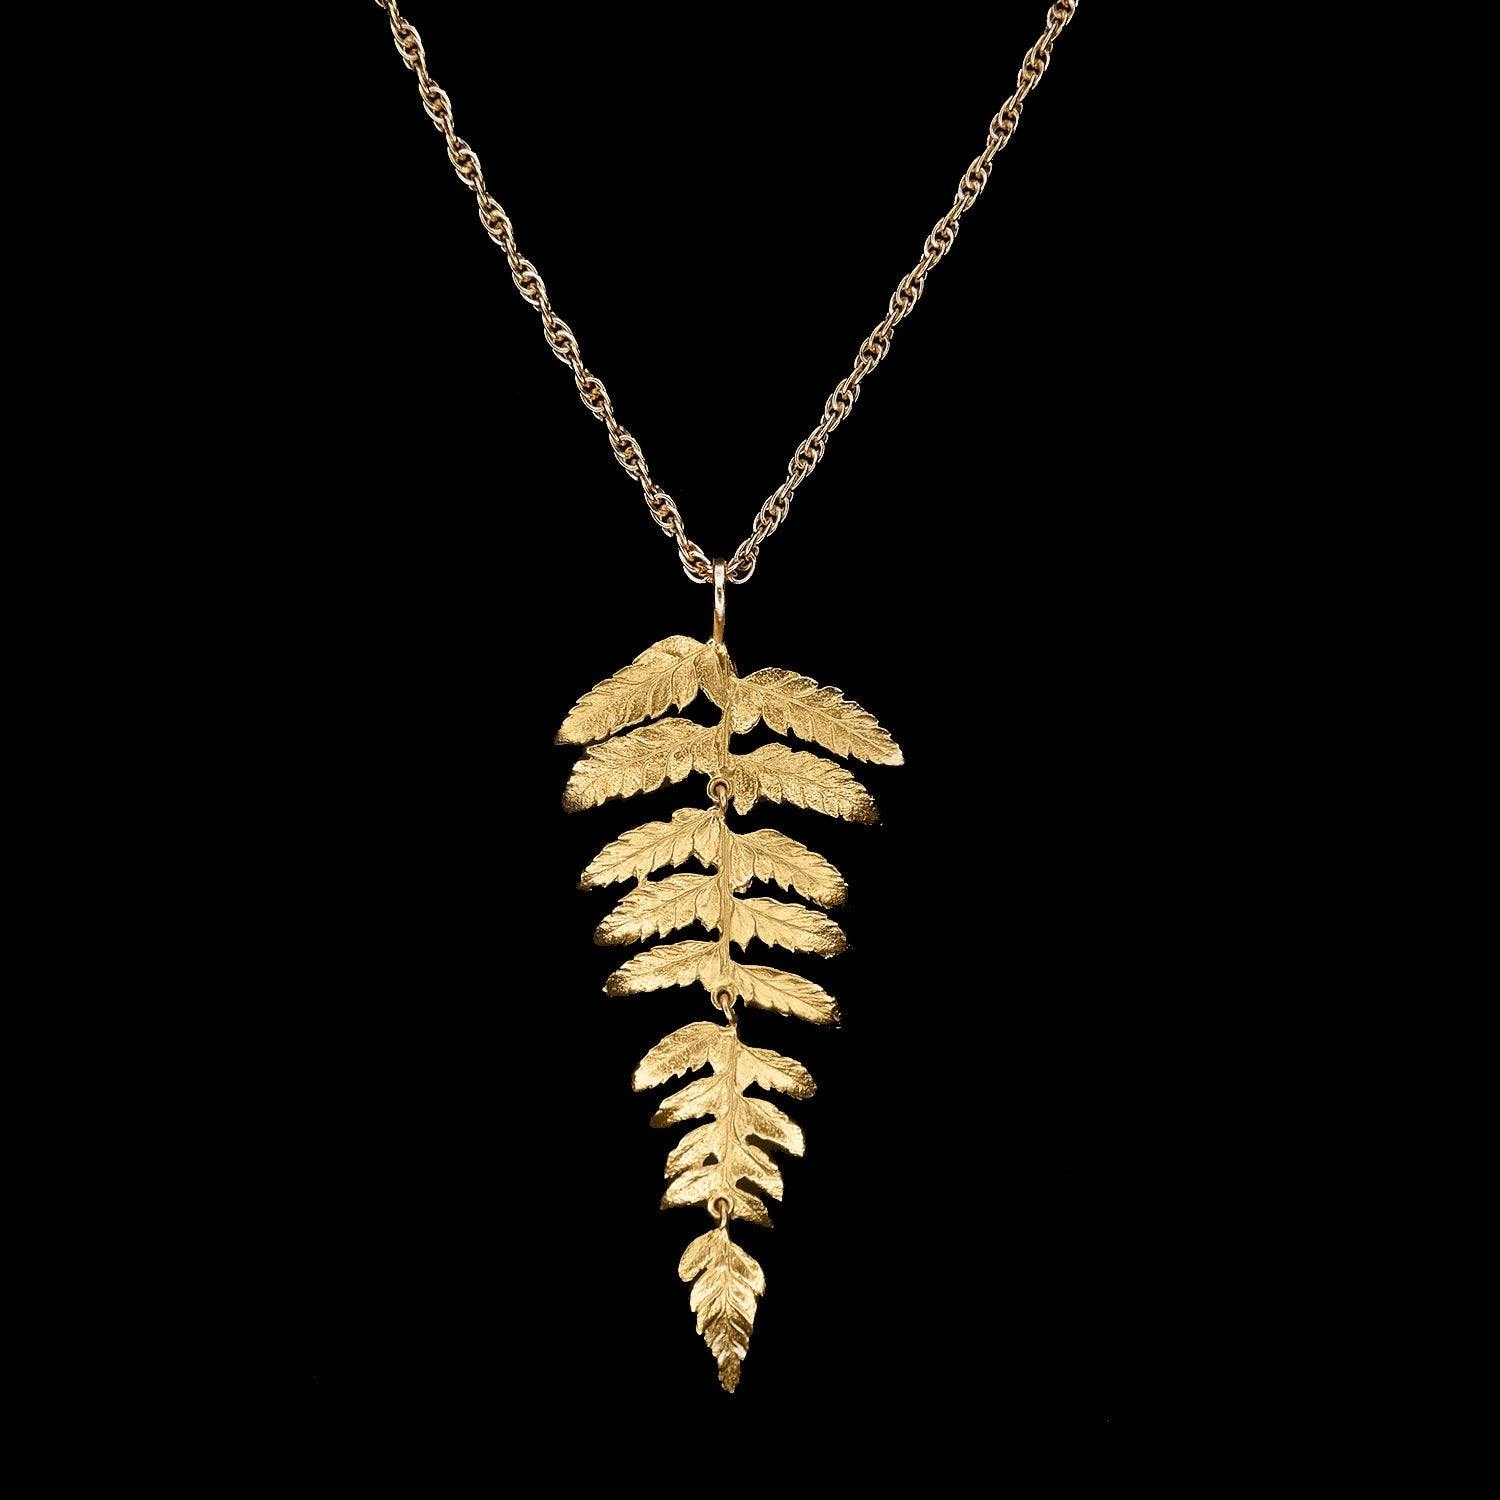 Fern Long Necklace